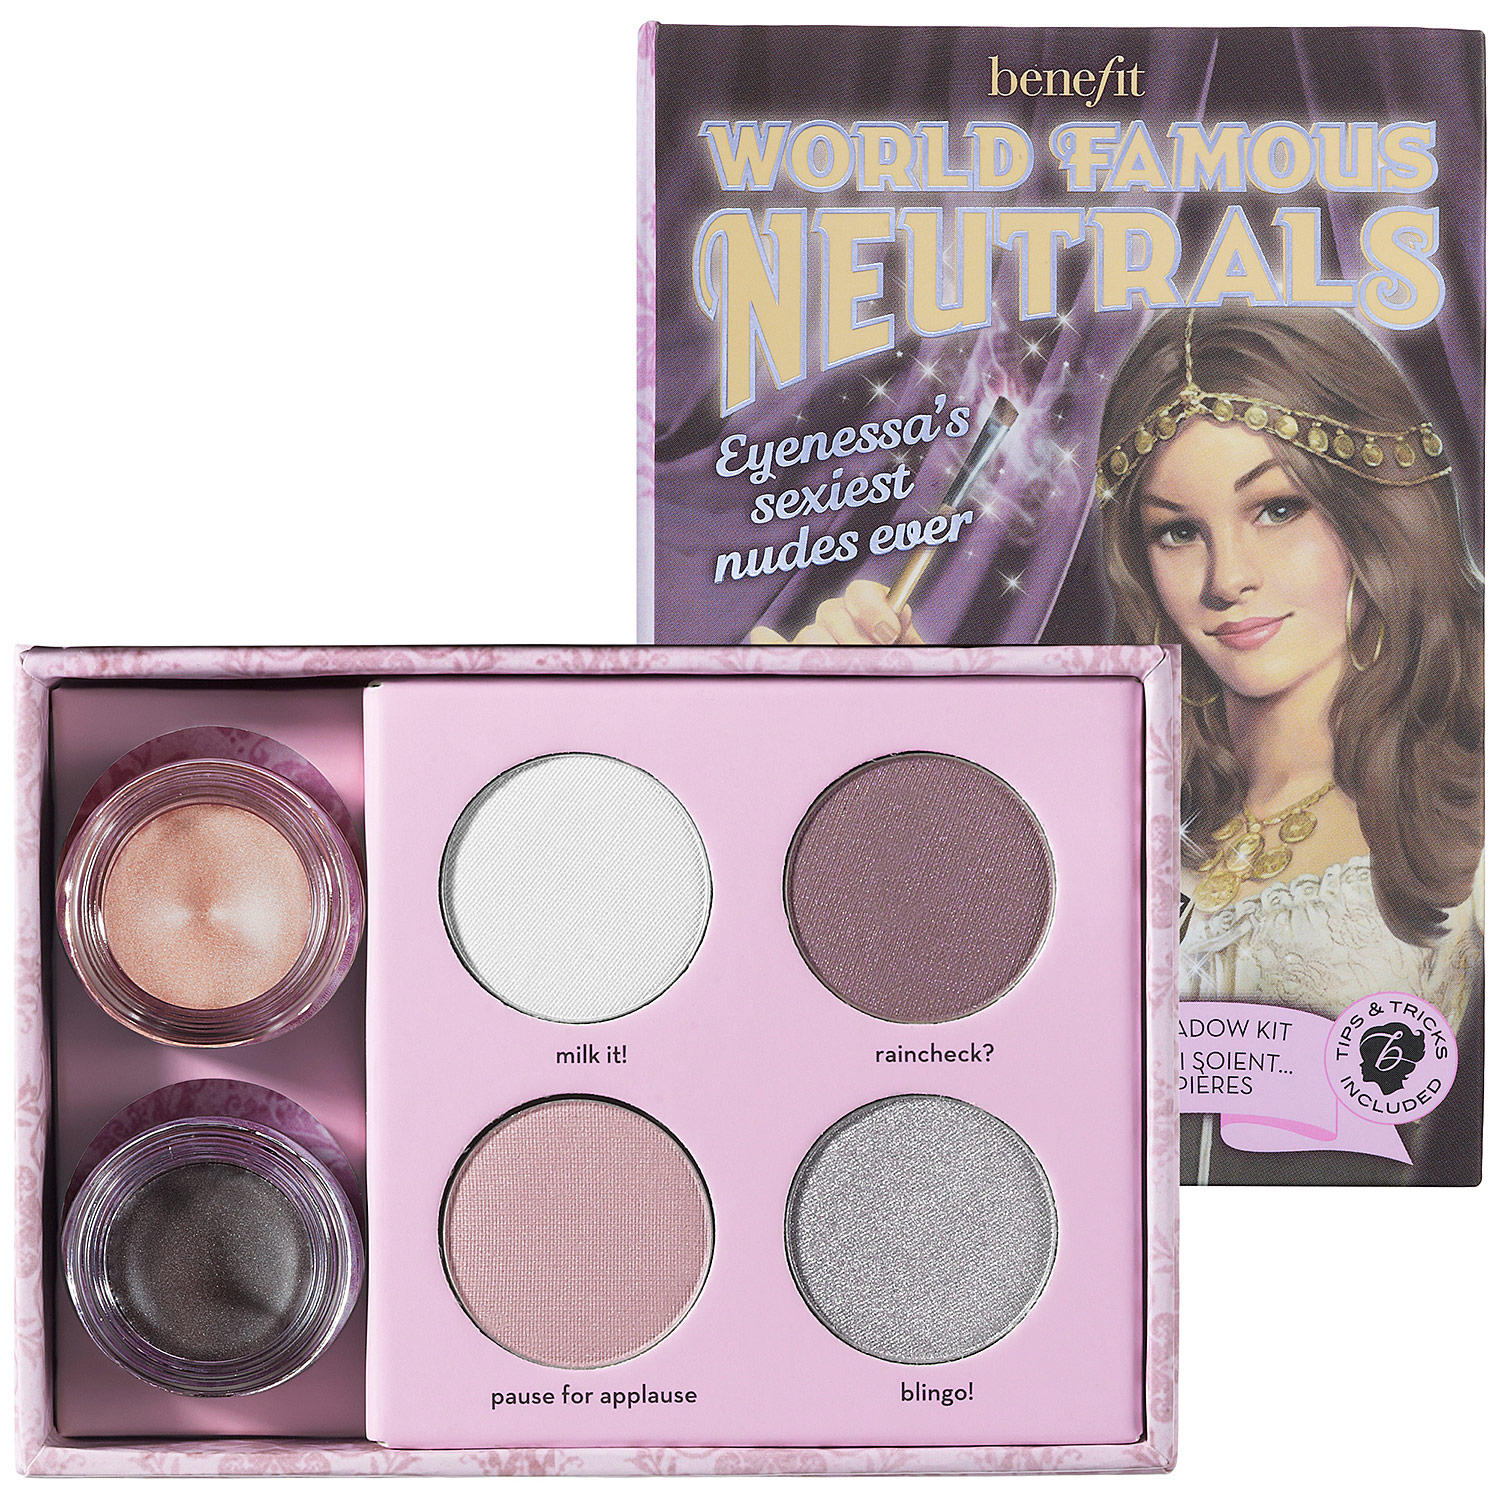 Benefit World Famous Neutrals Eyenessa's Sexiest Nudes Ever